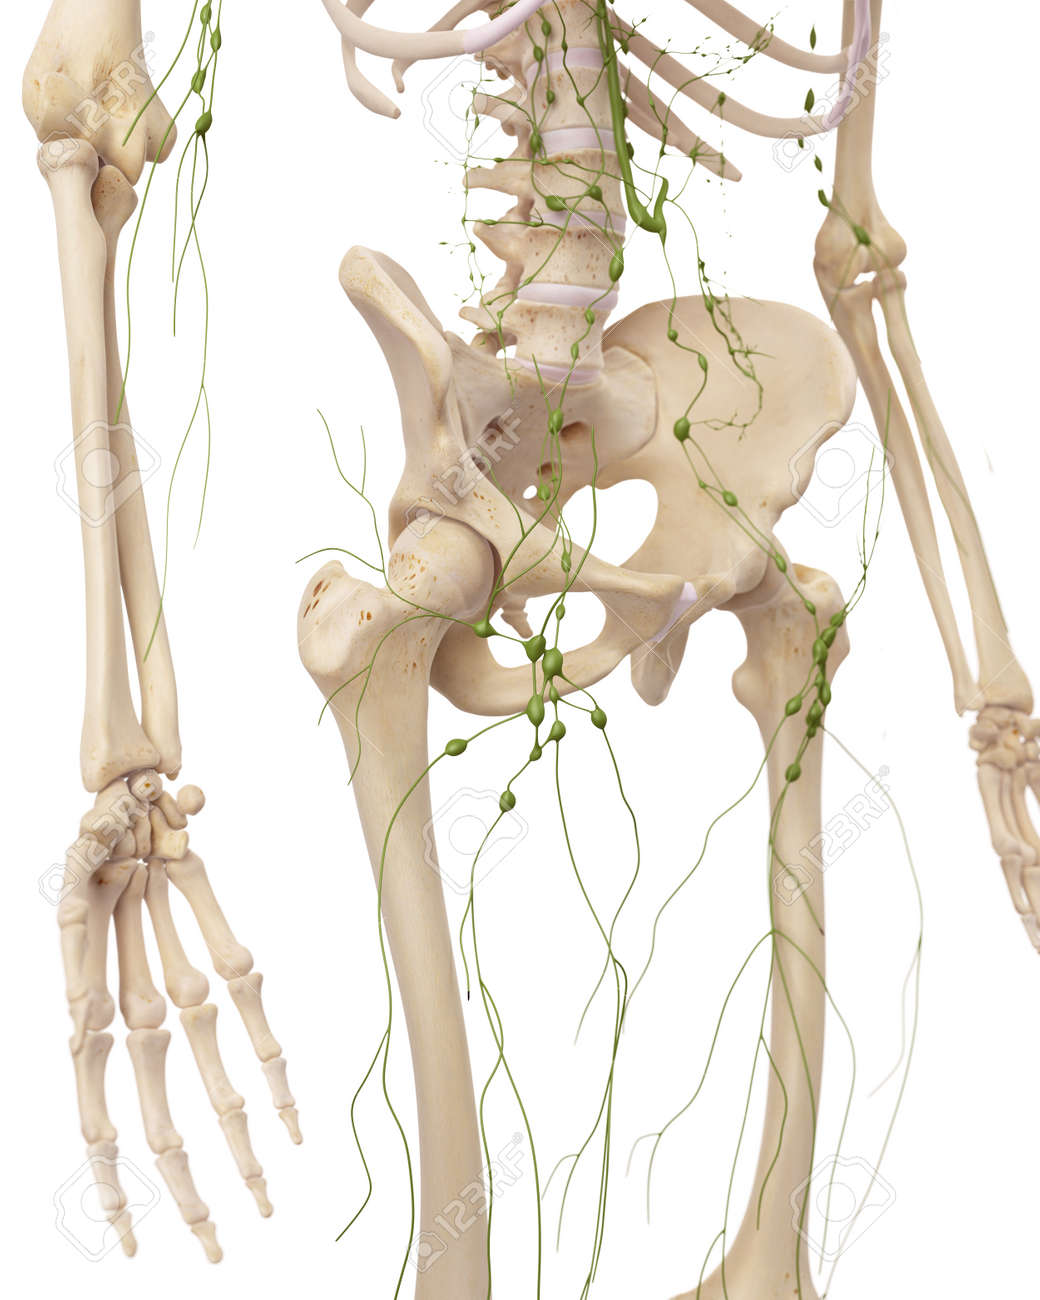 Medically Accurate Illustration Of The Inguinal Lymph Nodes Stock